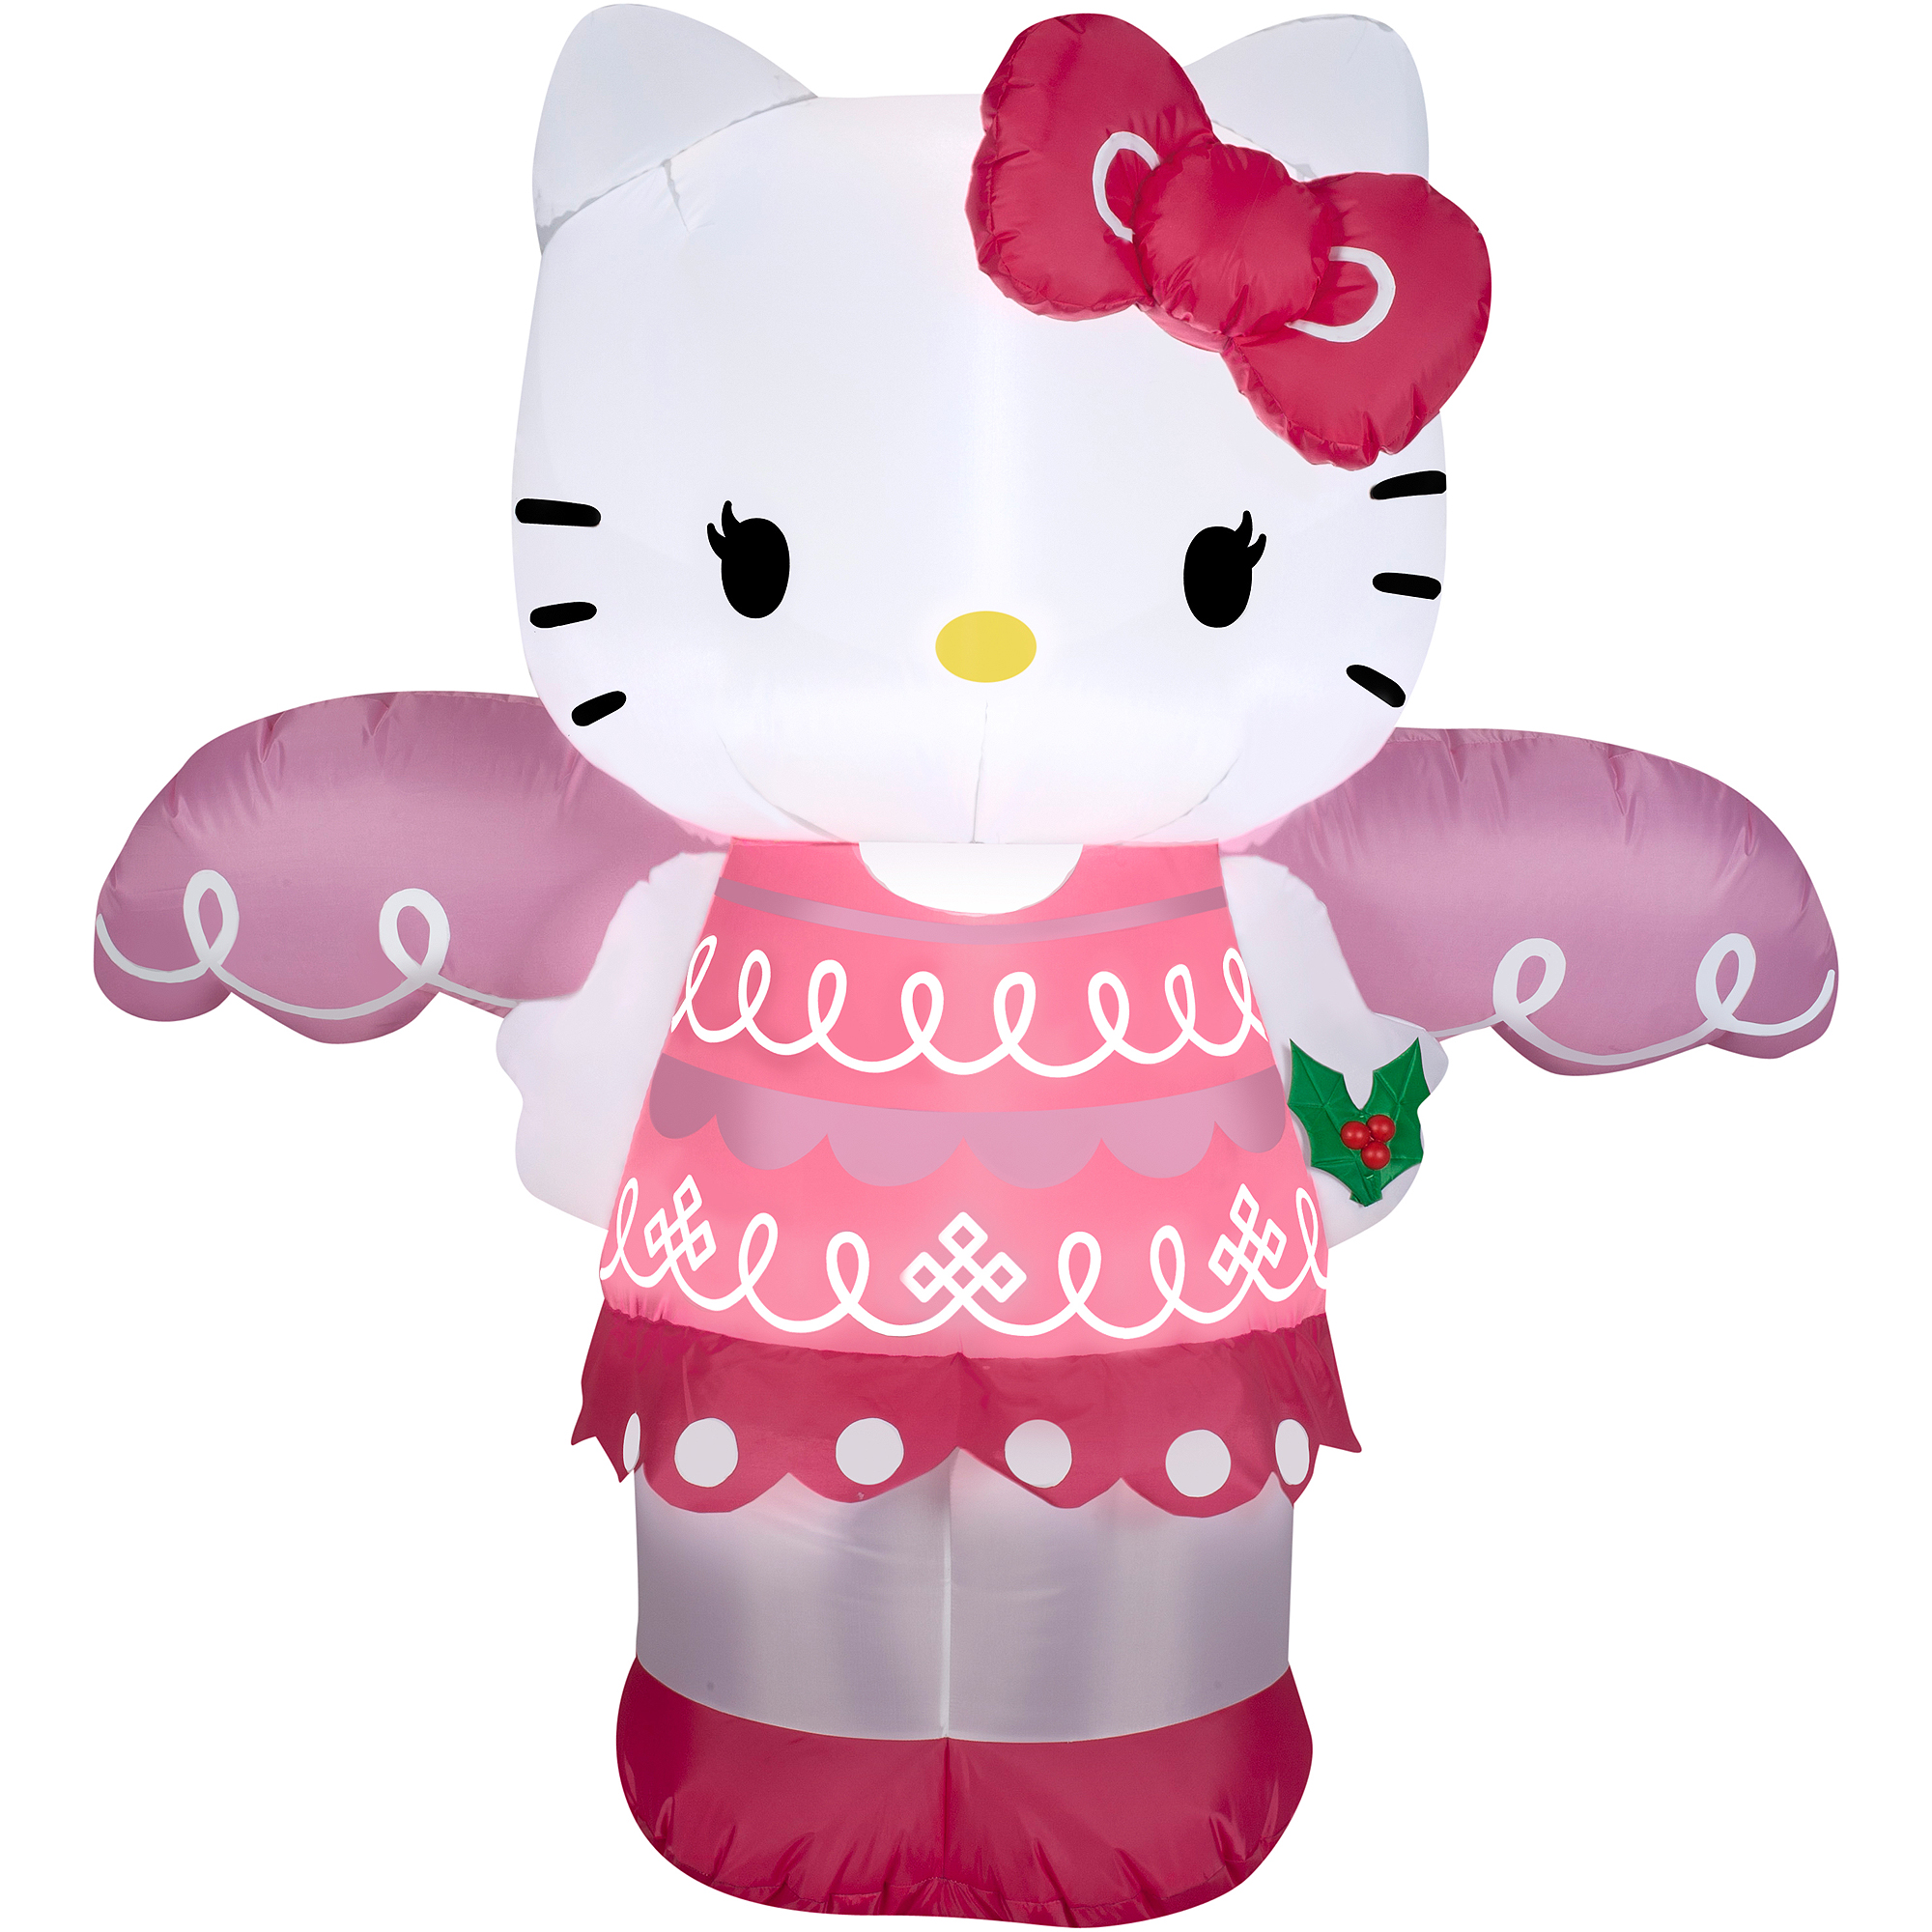 Airblown Inflatable 4u0027 Hello Kitty Angel Christmas Prop